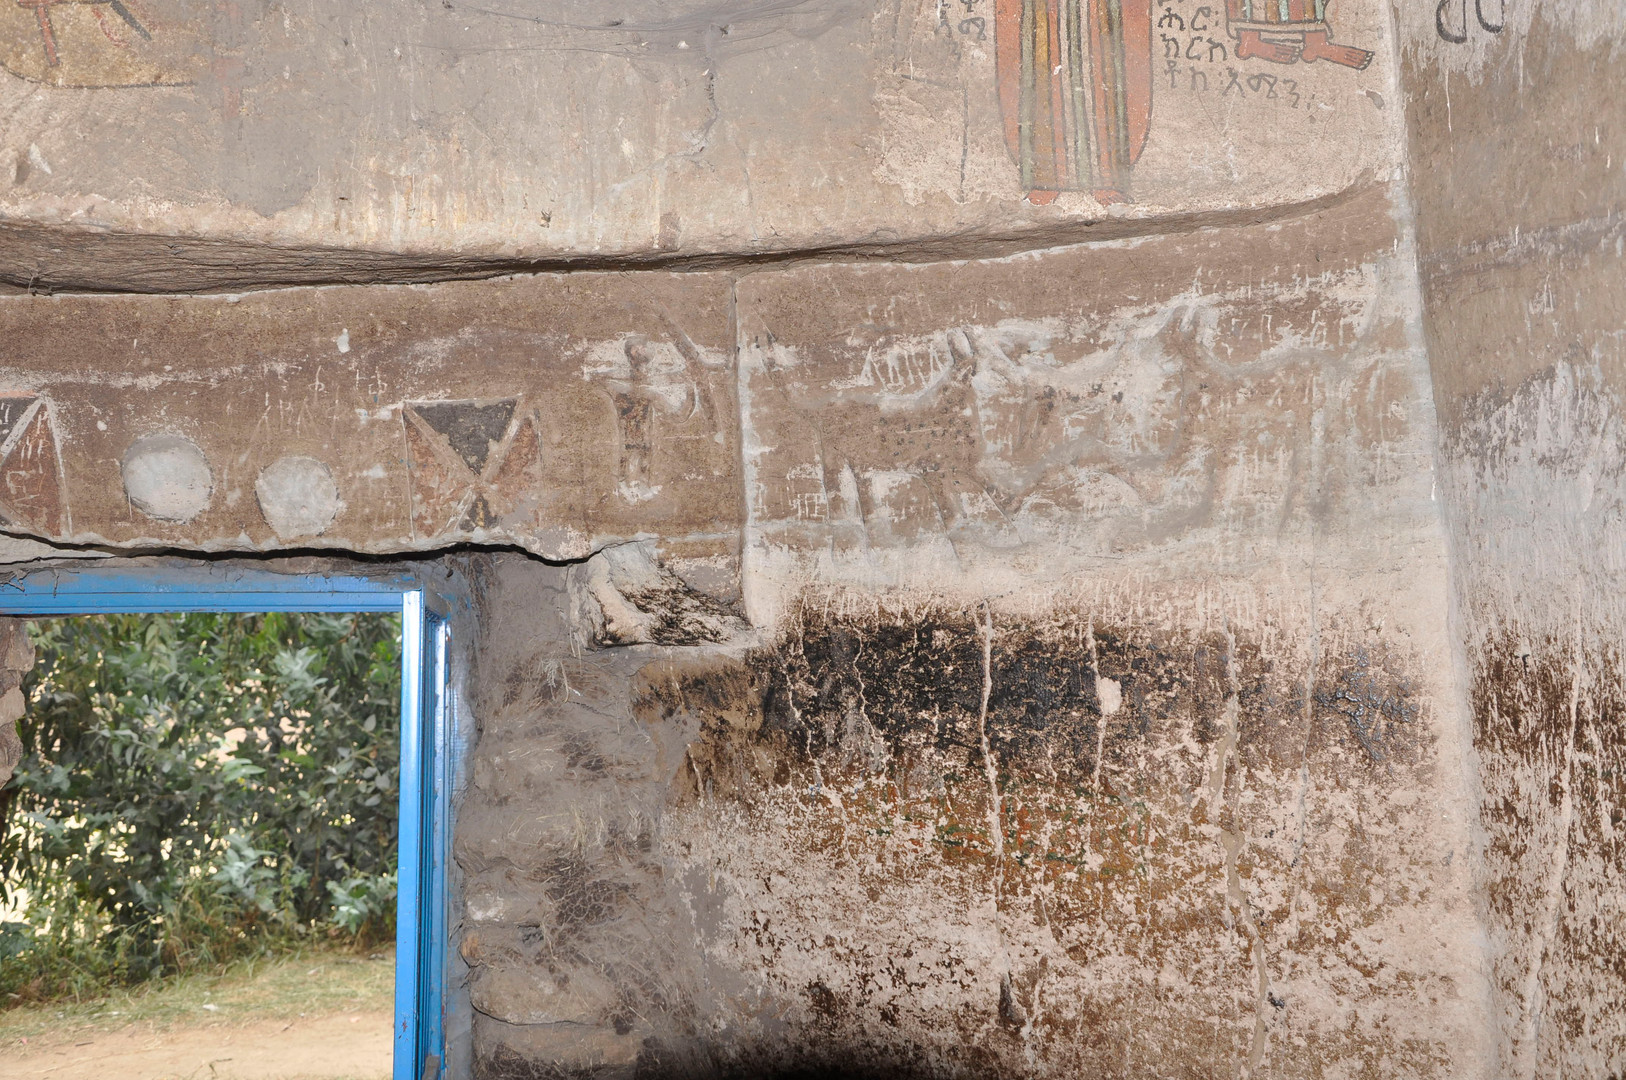 Abrasion at shoulder/head height on the walls of Wašša Mika'el church may have obliterated some of the low reliefs